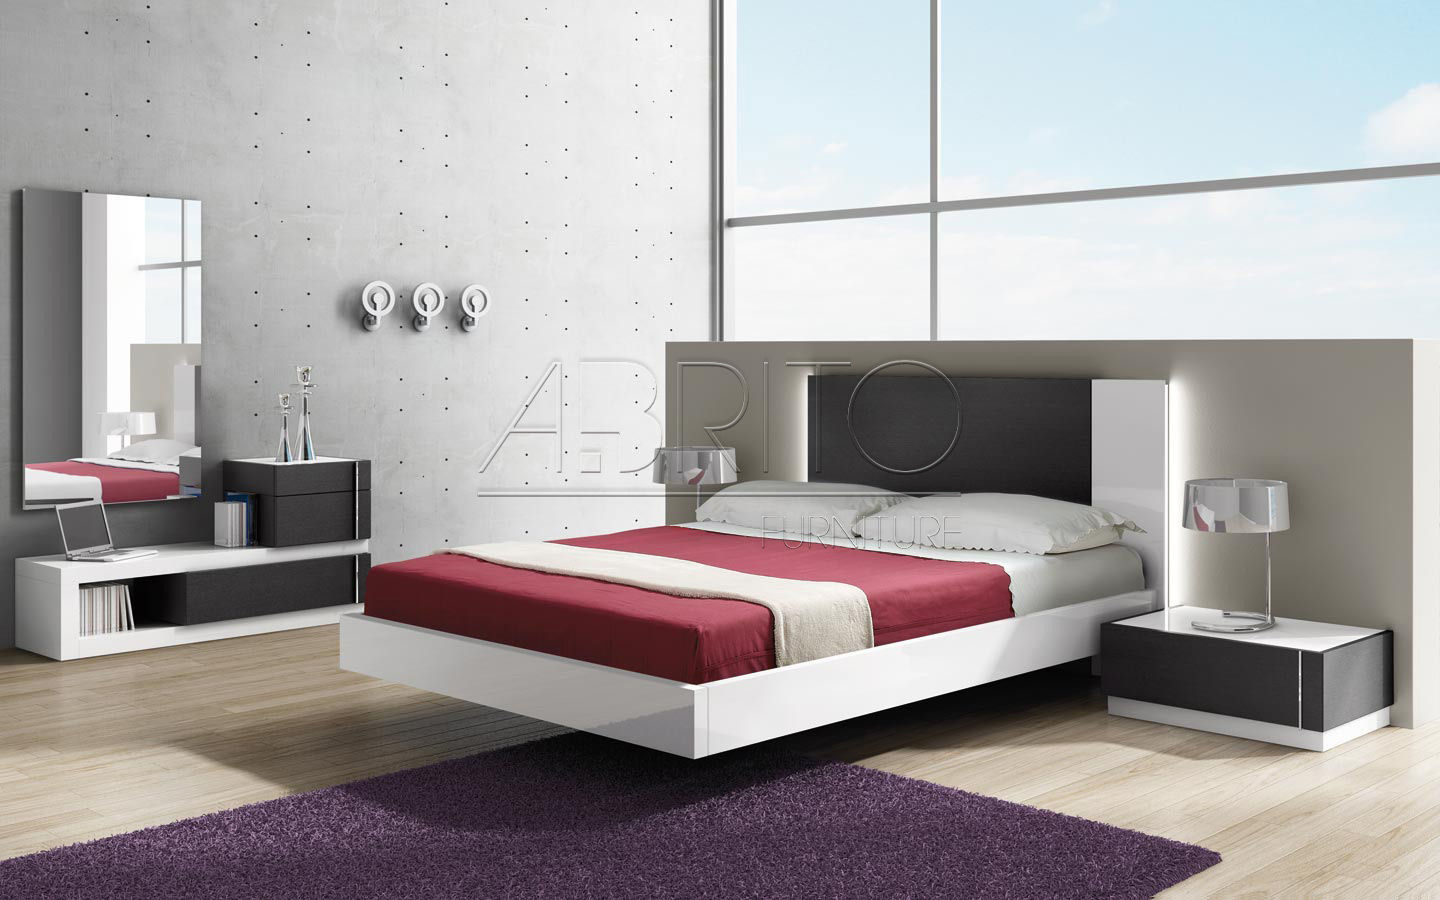 Floating bed / double / contemporary / wooden - SELECT : 07C - A ...